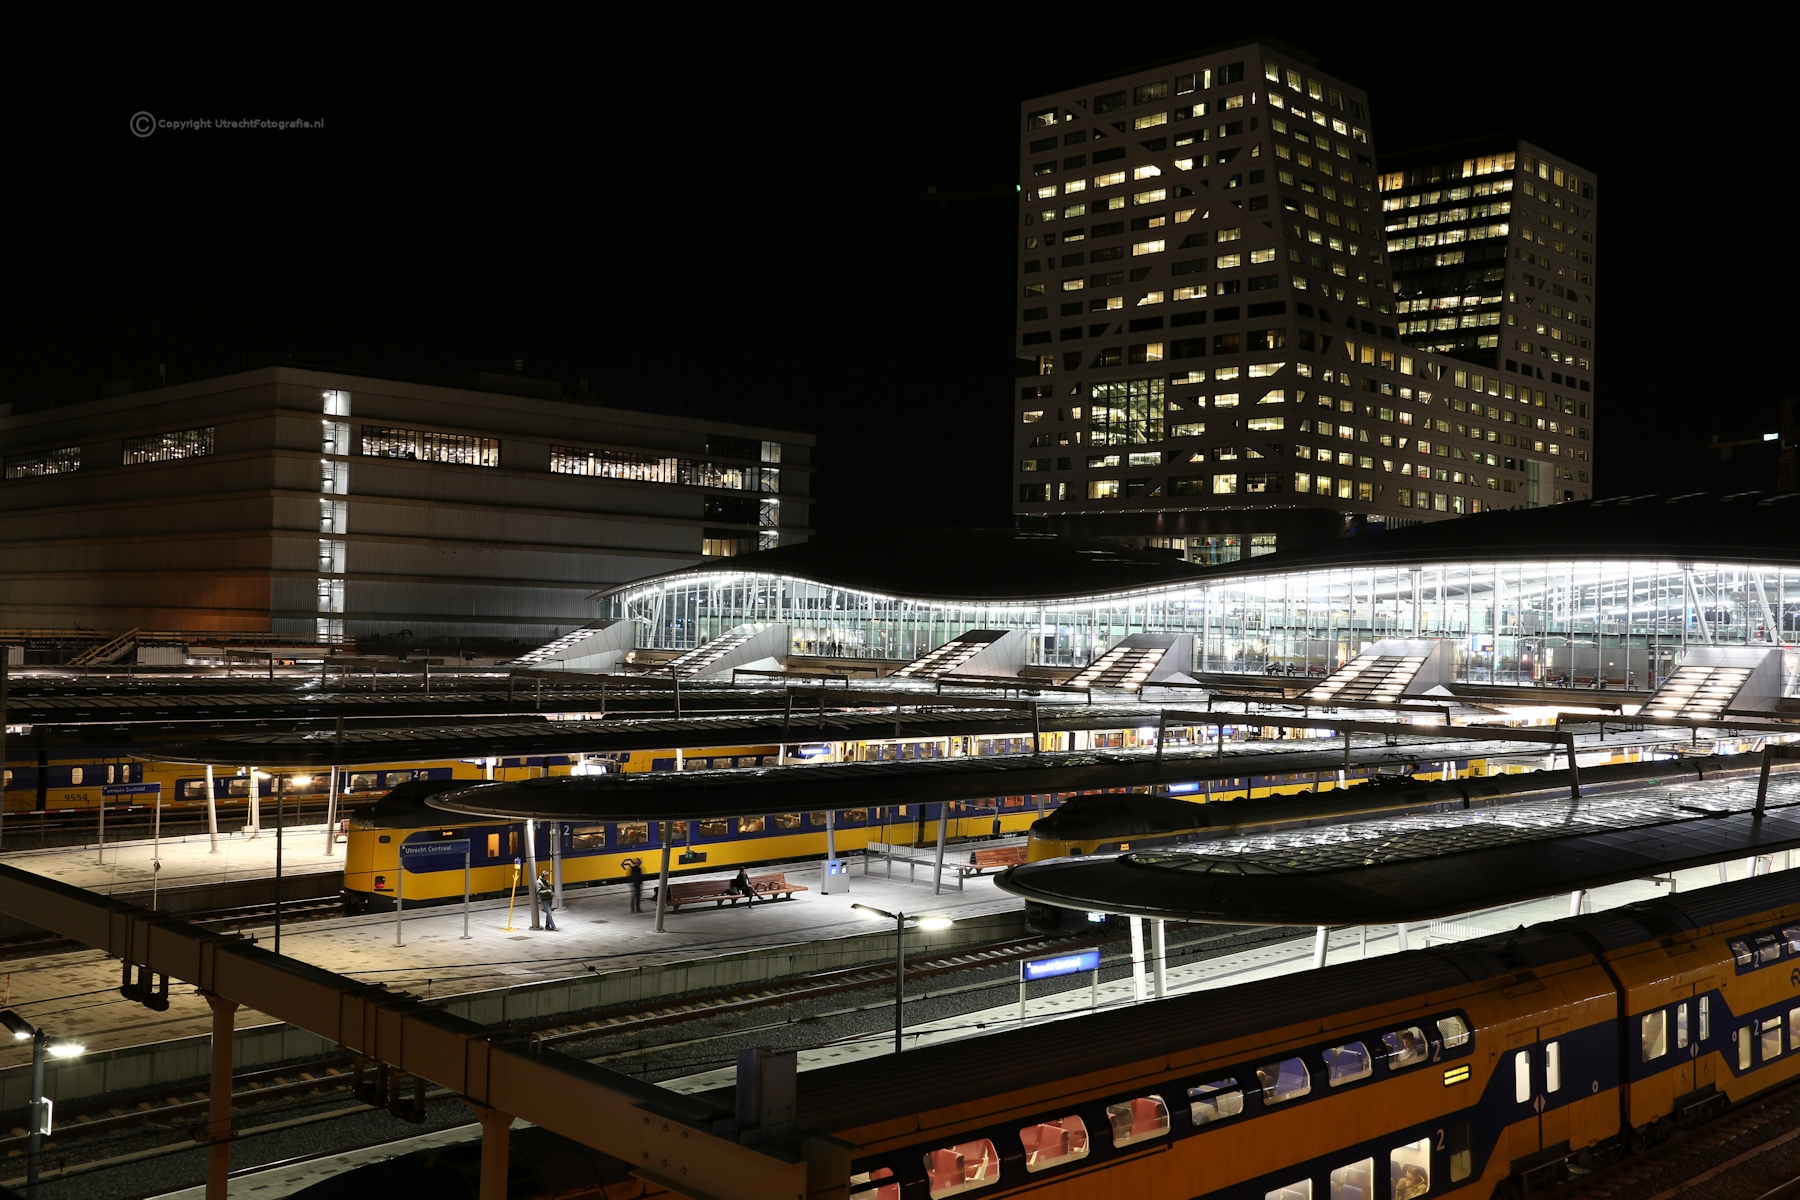 20171117 Centraal Station 1